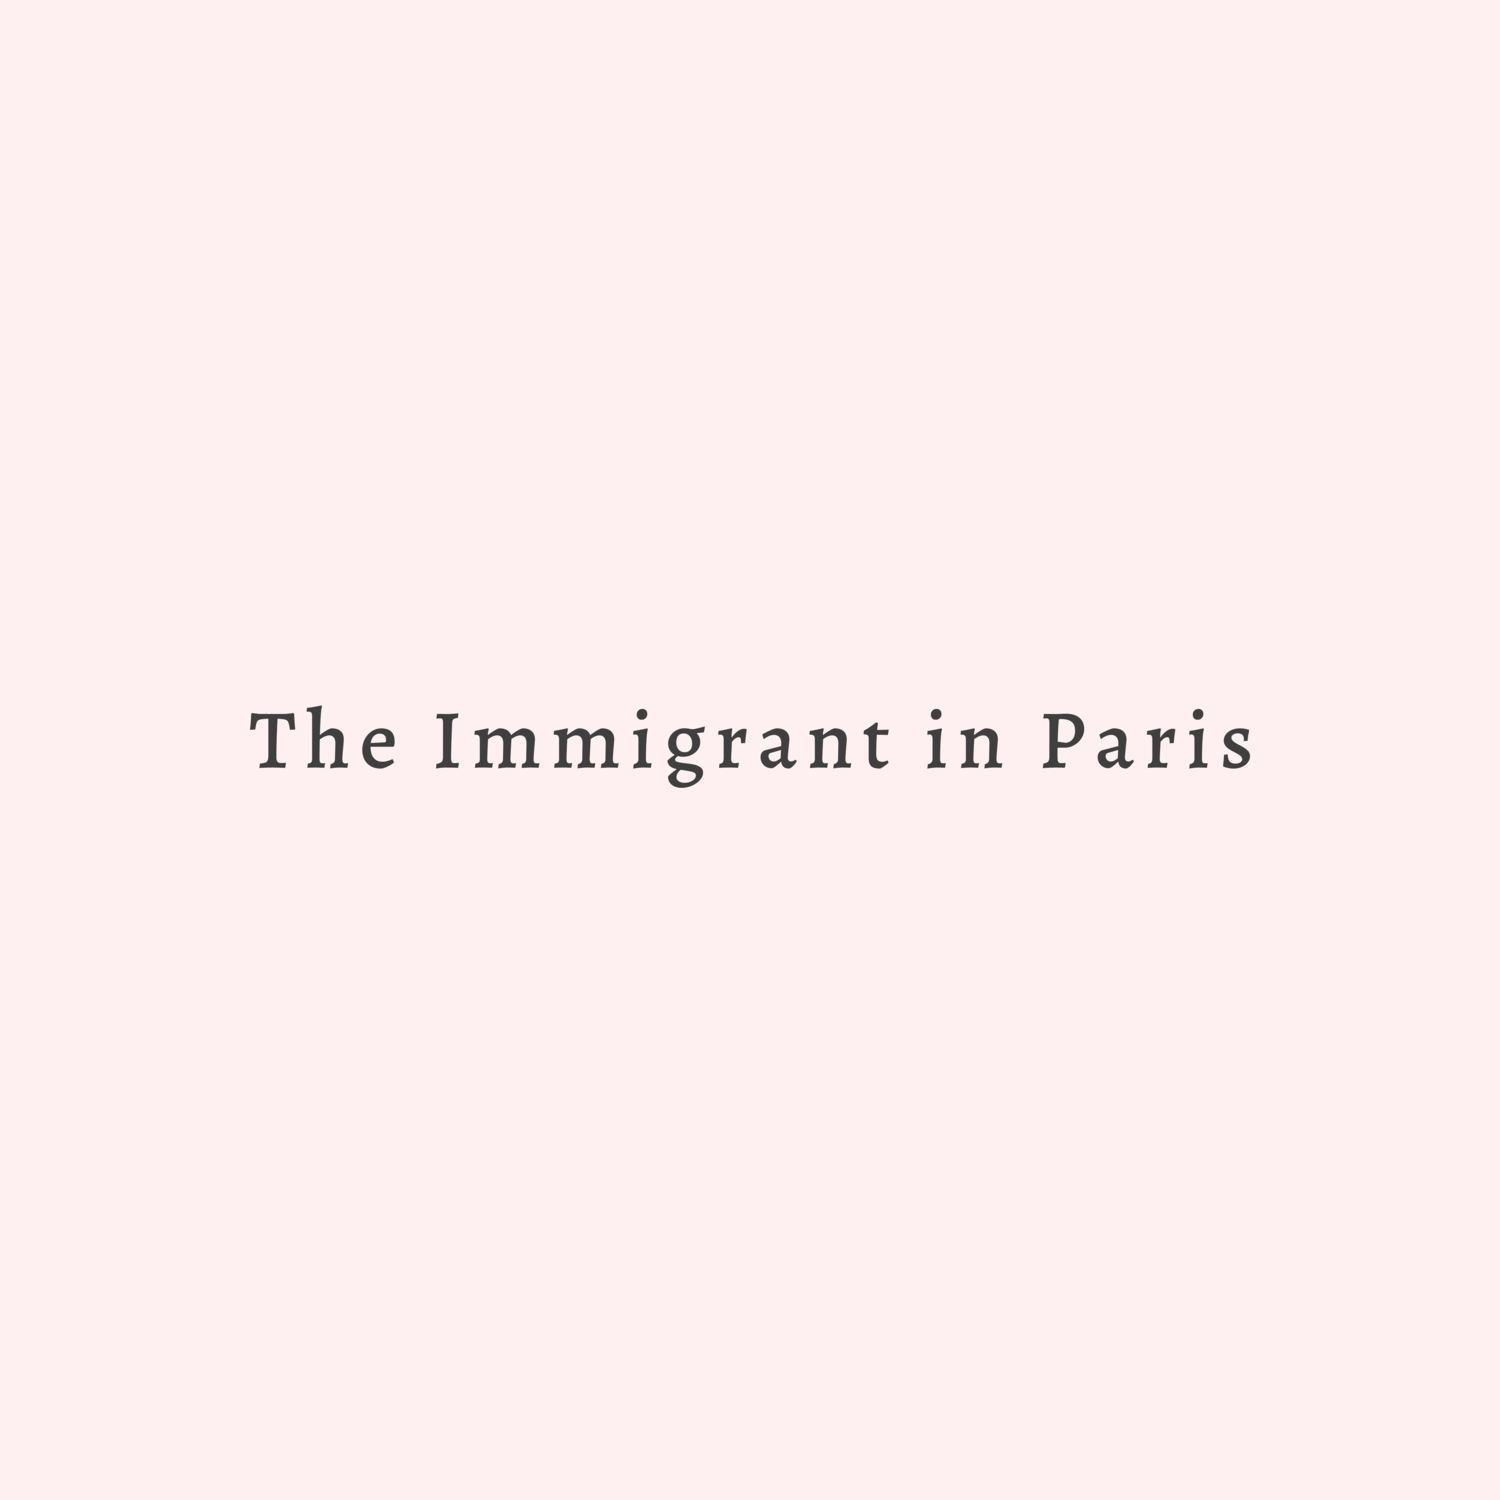 The Immigrant in Paris